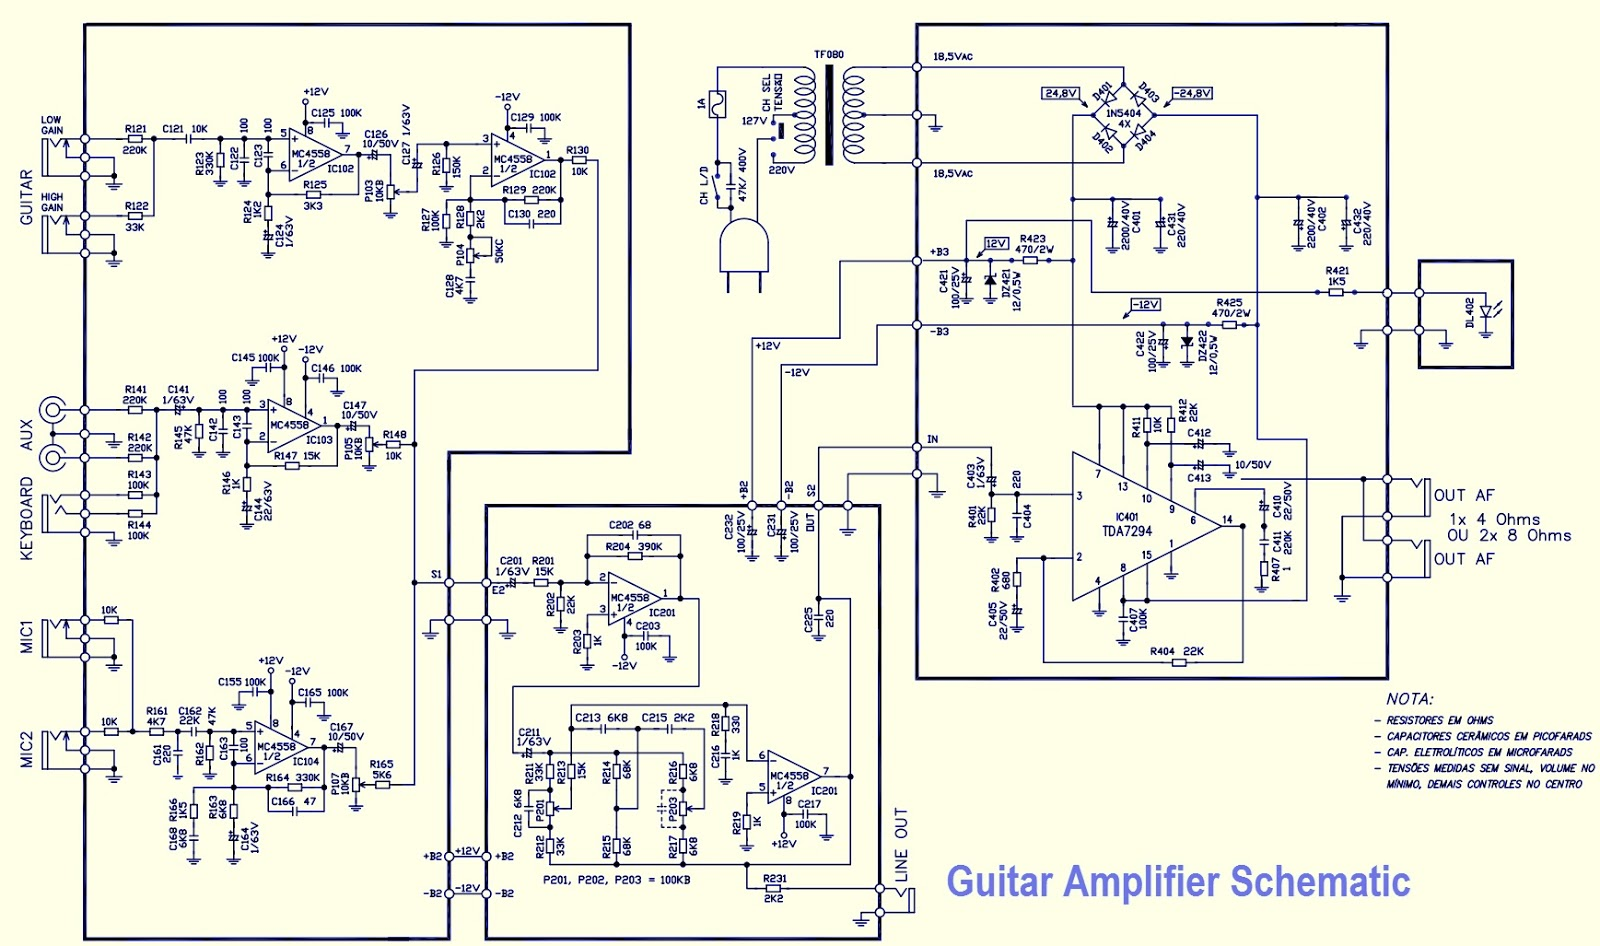 Guitar Amplifier Schematic Used Ics Mc4558 Tda7294 Electro Help Wiring Diagram The Output Ic Should Be Mounted On Aluminium Extruded Heat Sink Use Of Compound Is A Must